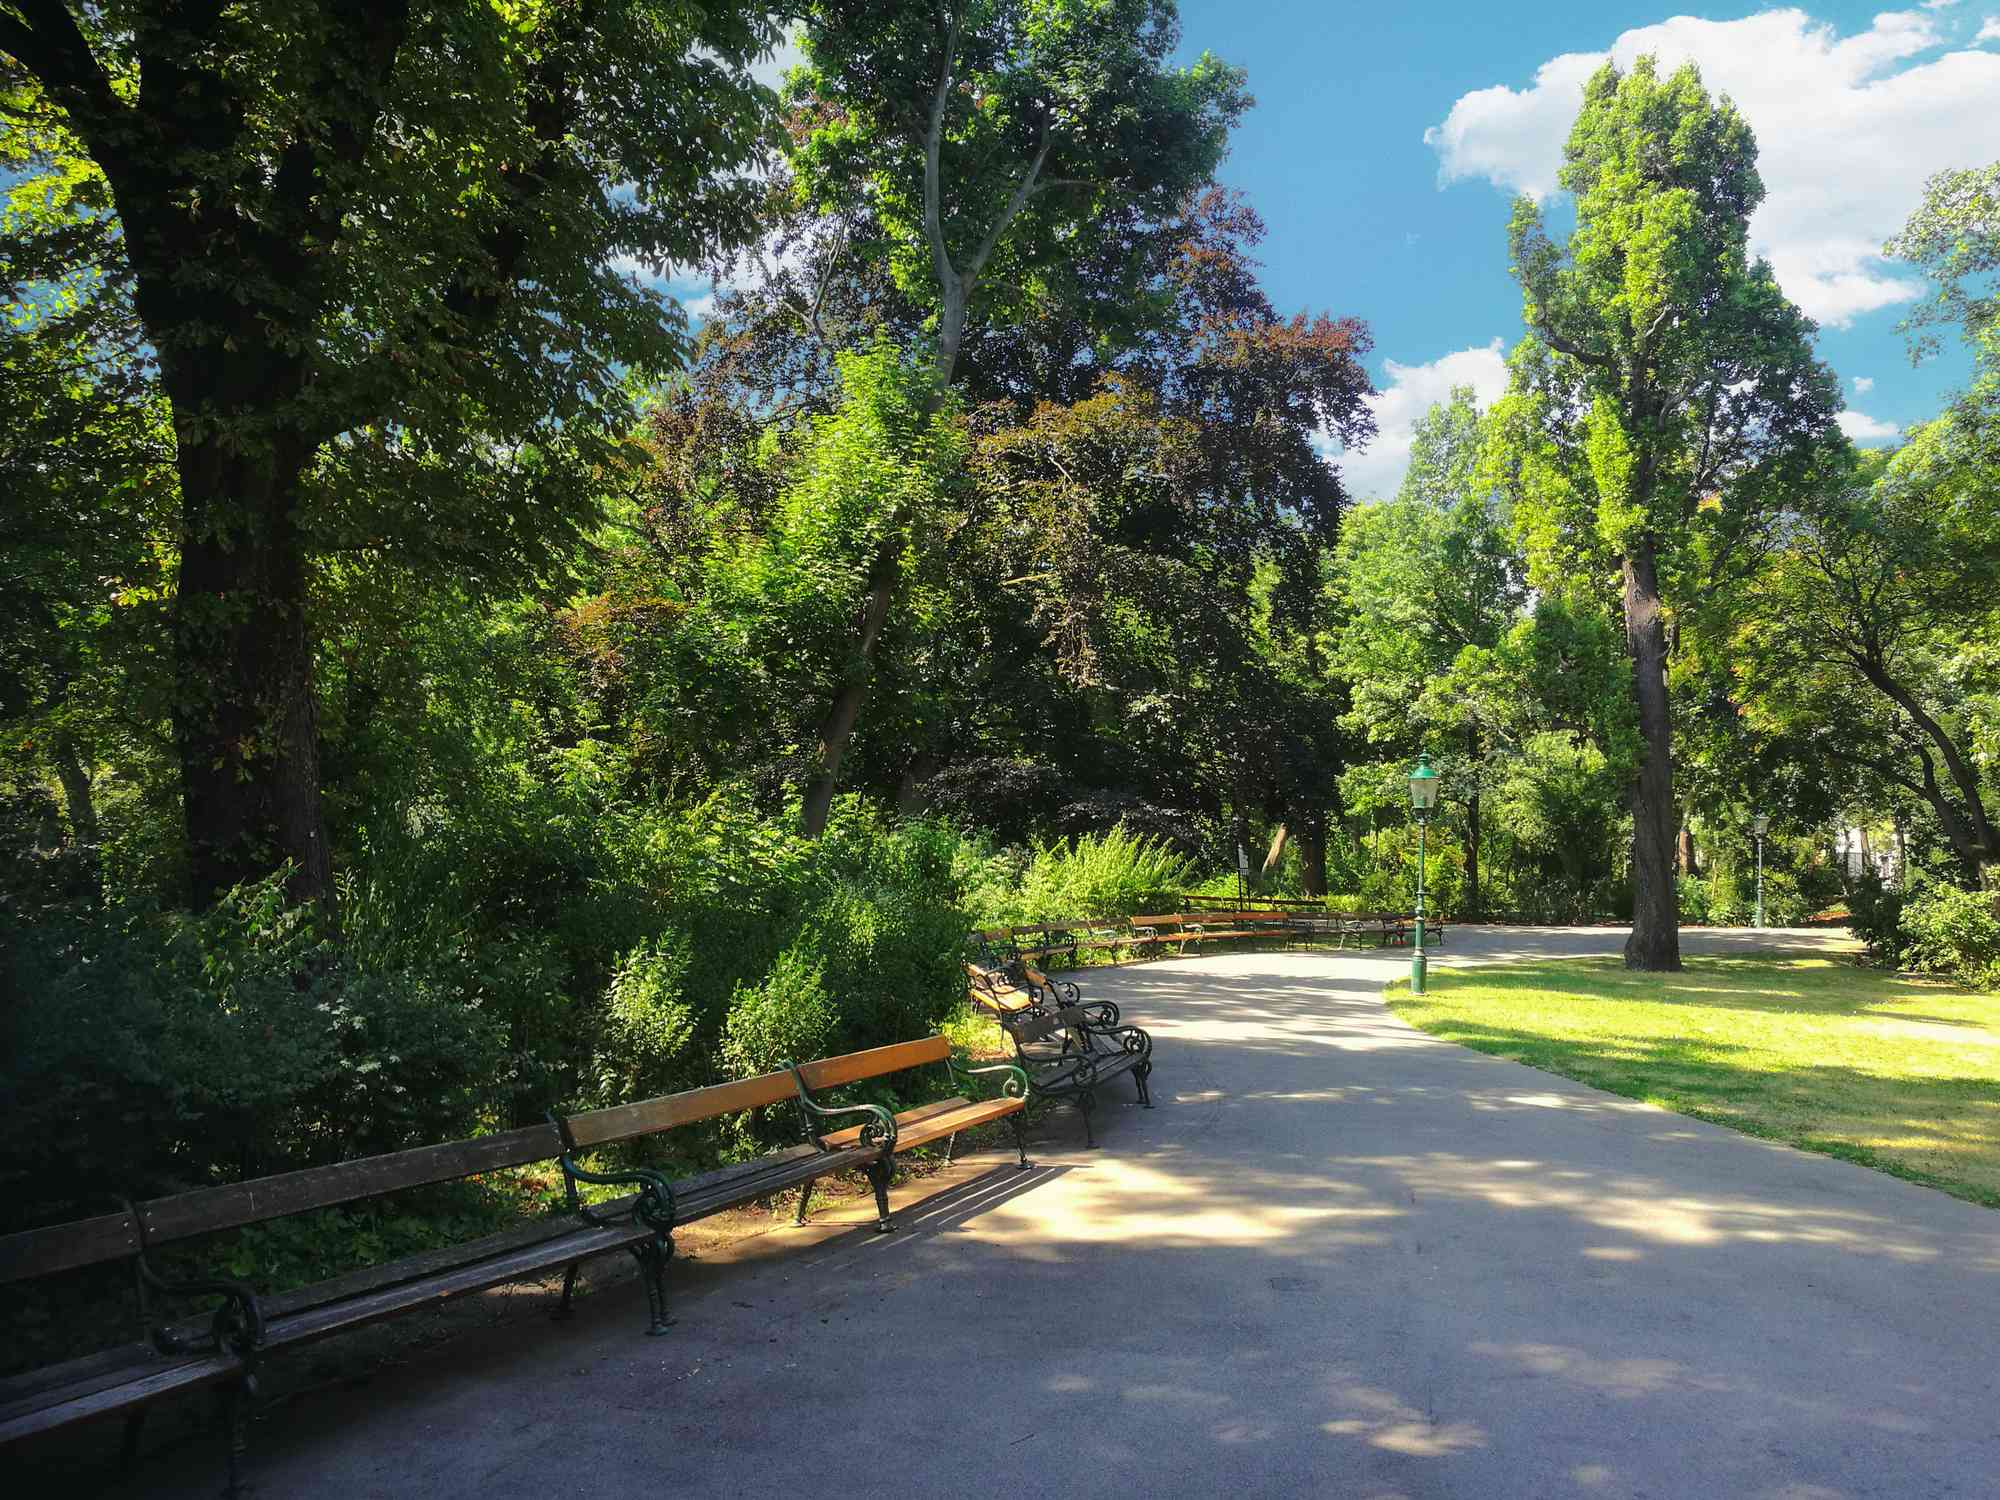 a walking path with several benches in the shade under large, green trees and small bushes at Vienna Stadtpark under a blue sky with white clouds on a summer day